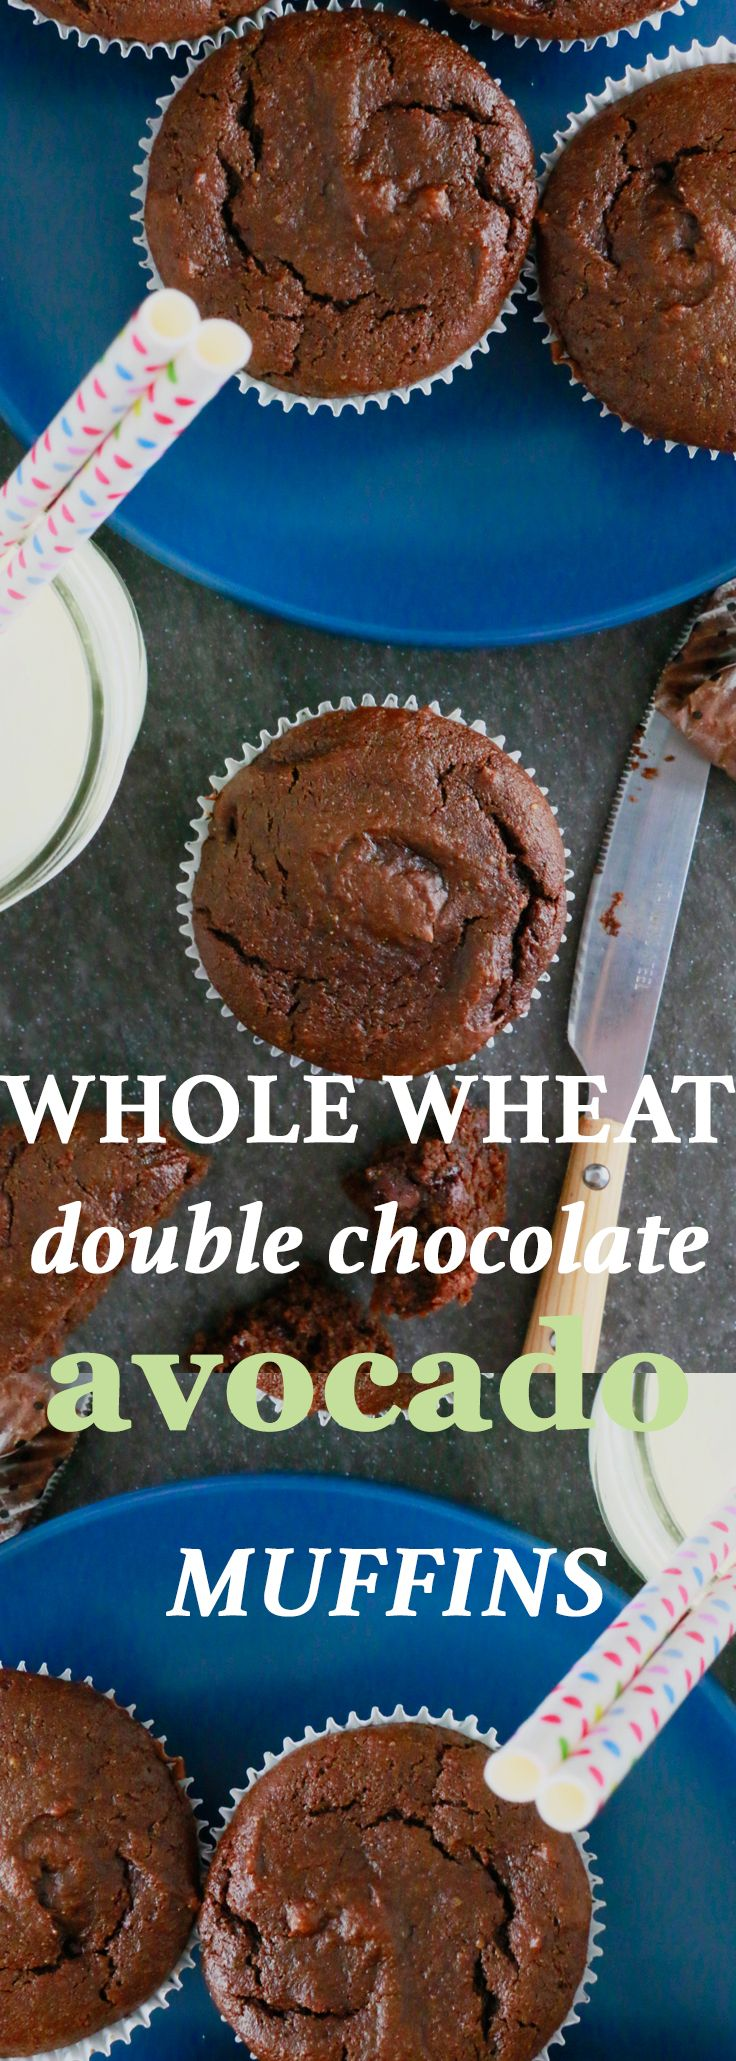 avocado recipes | chocolate muffins | double chocolate muffins | whole wheat muffins | healthy muffins | avocado muffins | muffin recipes | chocolate avocado